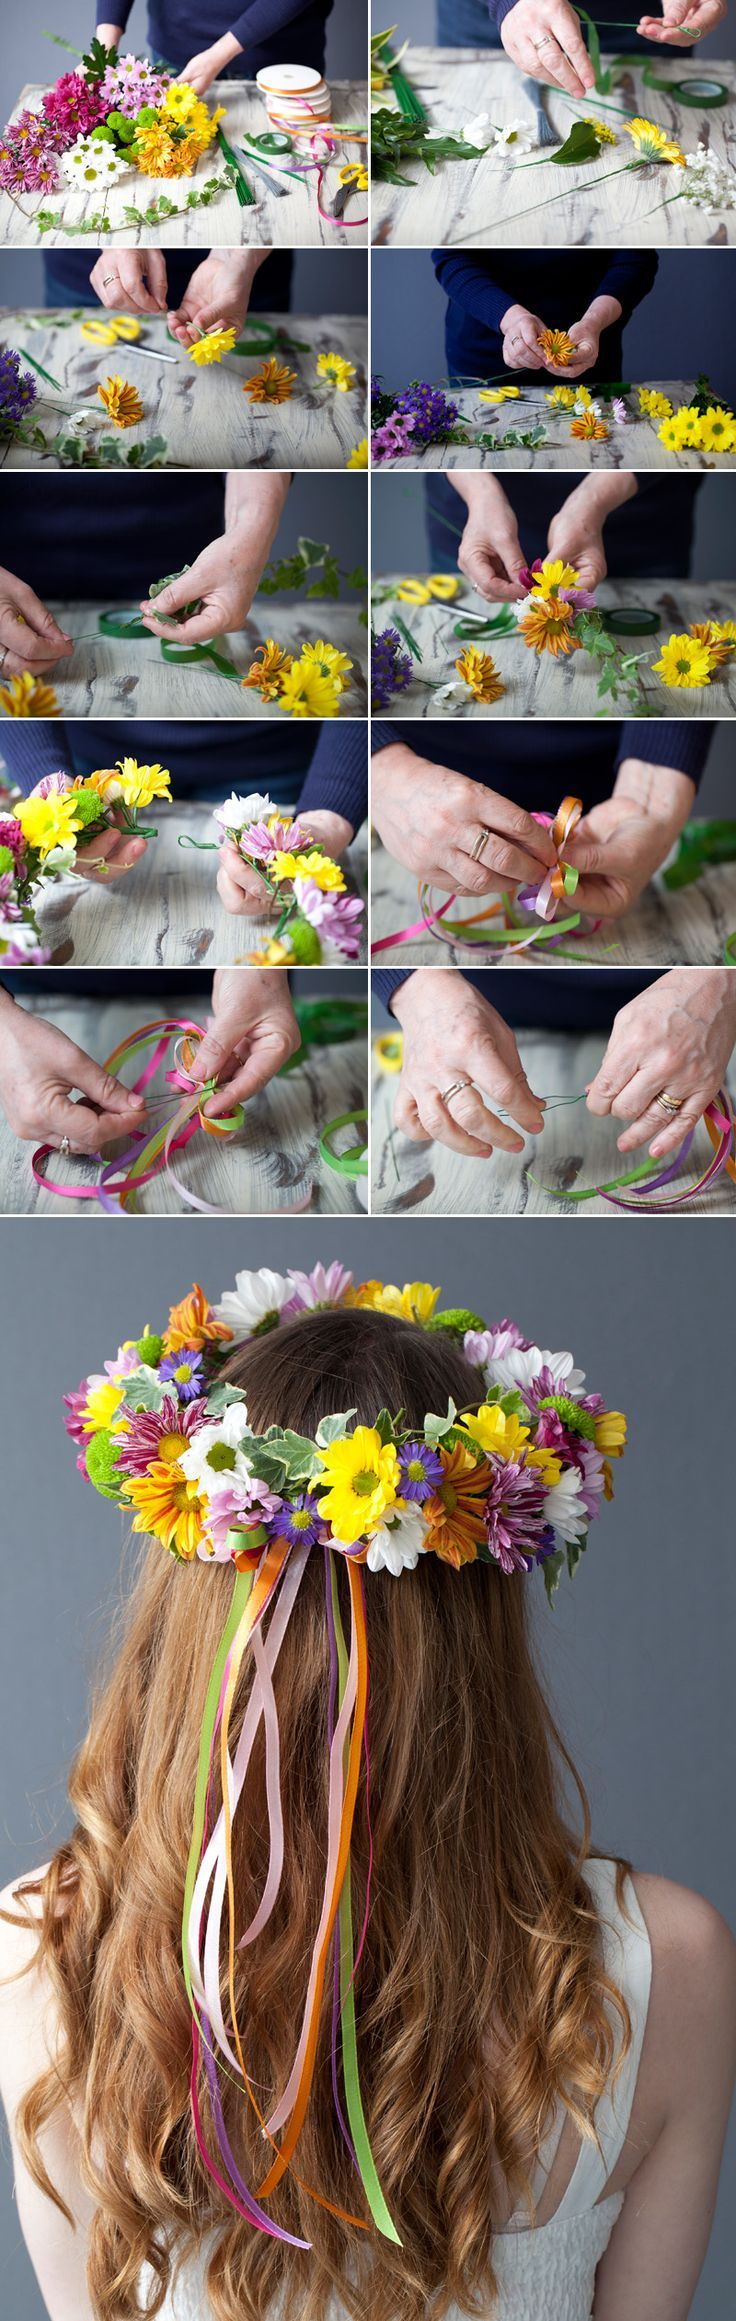 Wedding ideas: chair sashes, hair and body sashes, centerpieces. Celebrate with flowers! Your colors convey a meaning, a mood. Destination weddings, vow renewals, cruise weddings, ports-of-call weddings, call PJ or pj@wildsidedestinations.com http://www.destinationweddings.travel/default.asp?sid=41771&pid=67350  #allcouplesallowed #allbridesallowed